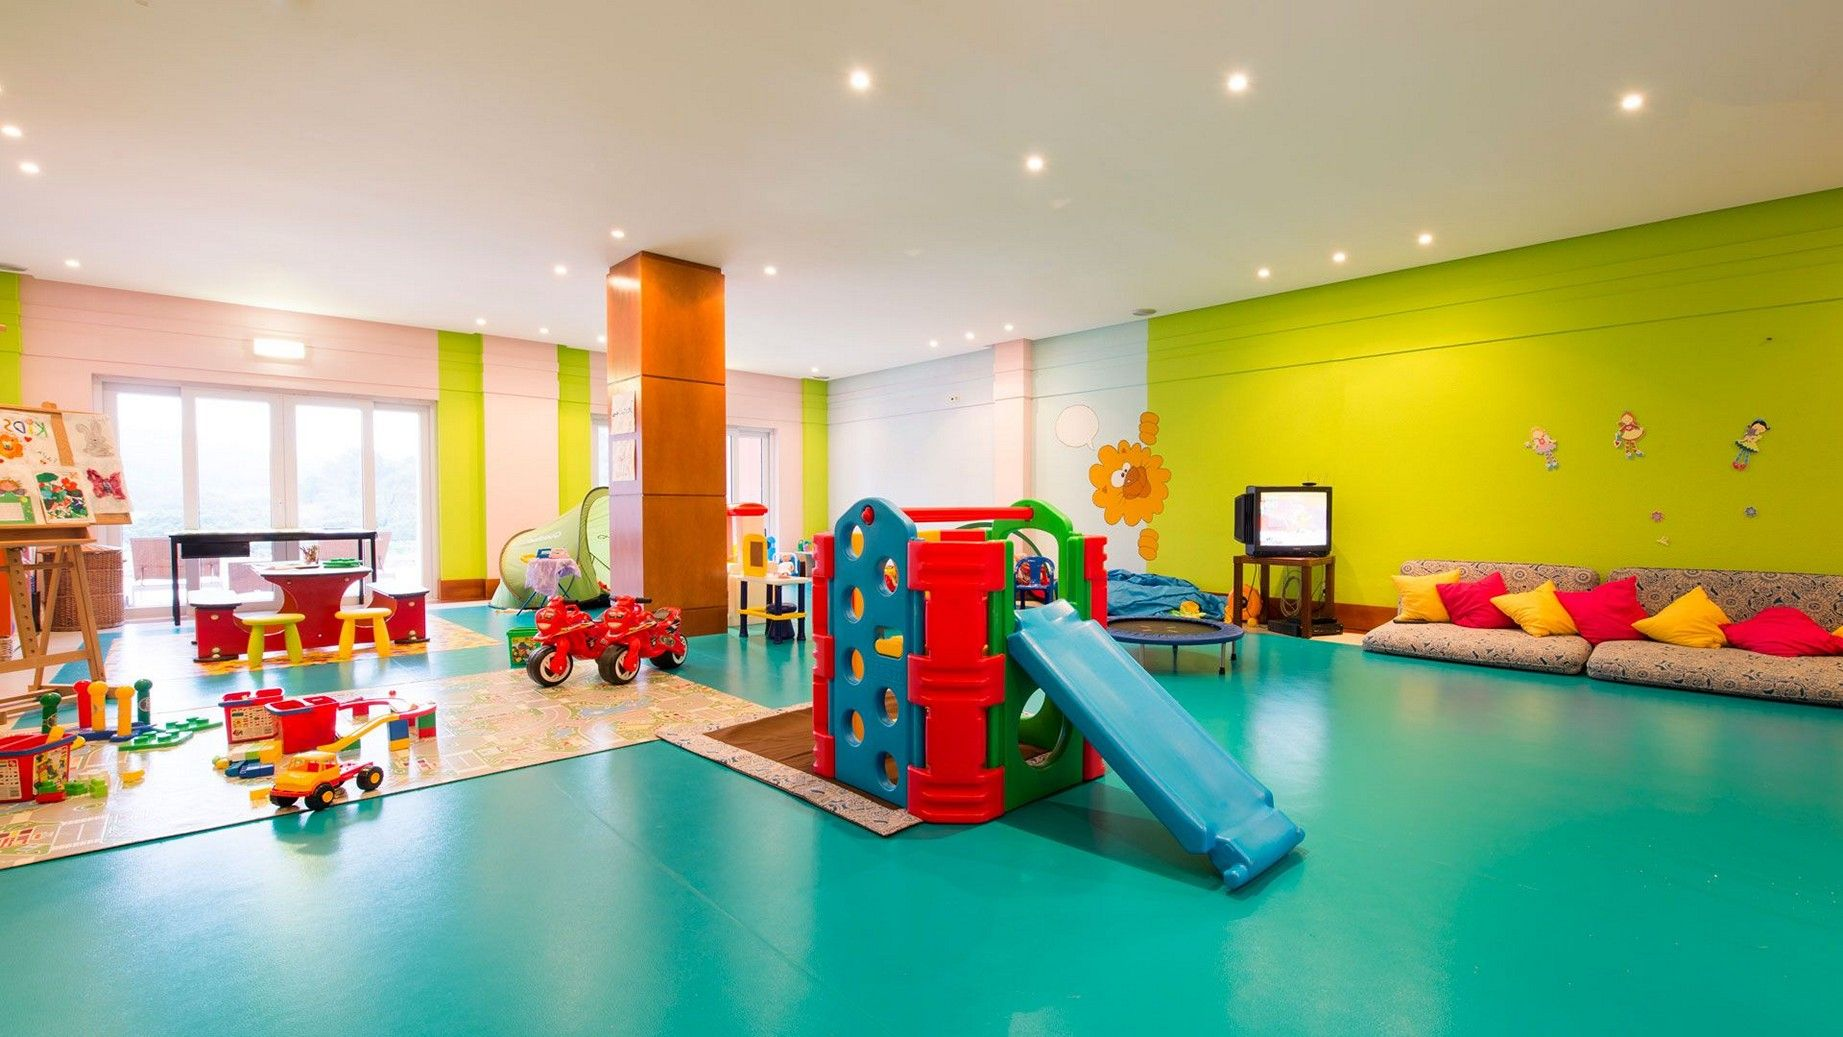 Fun Playroom Ideas Kids Playroom Ideas For The Comfortable And Safe Playtime Kids